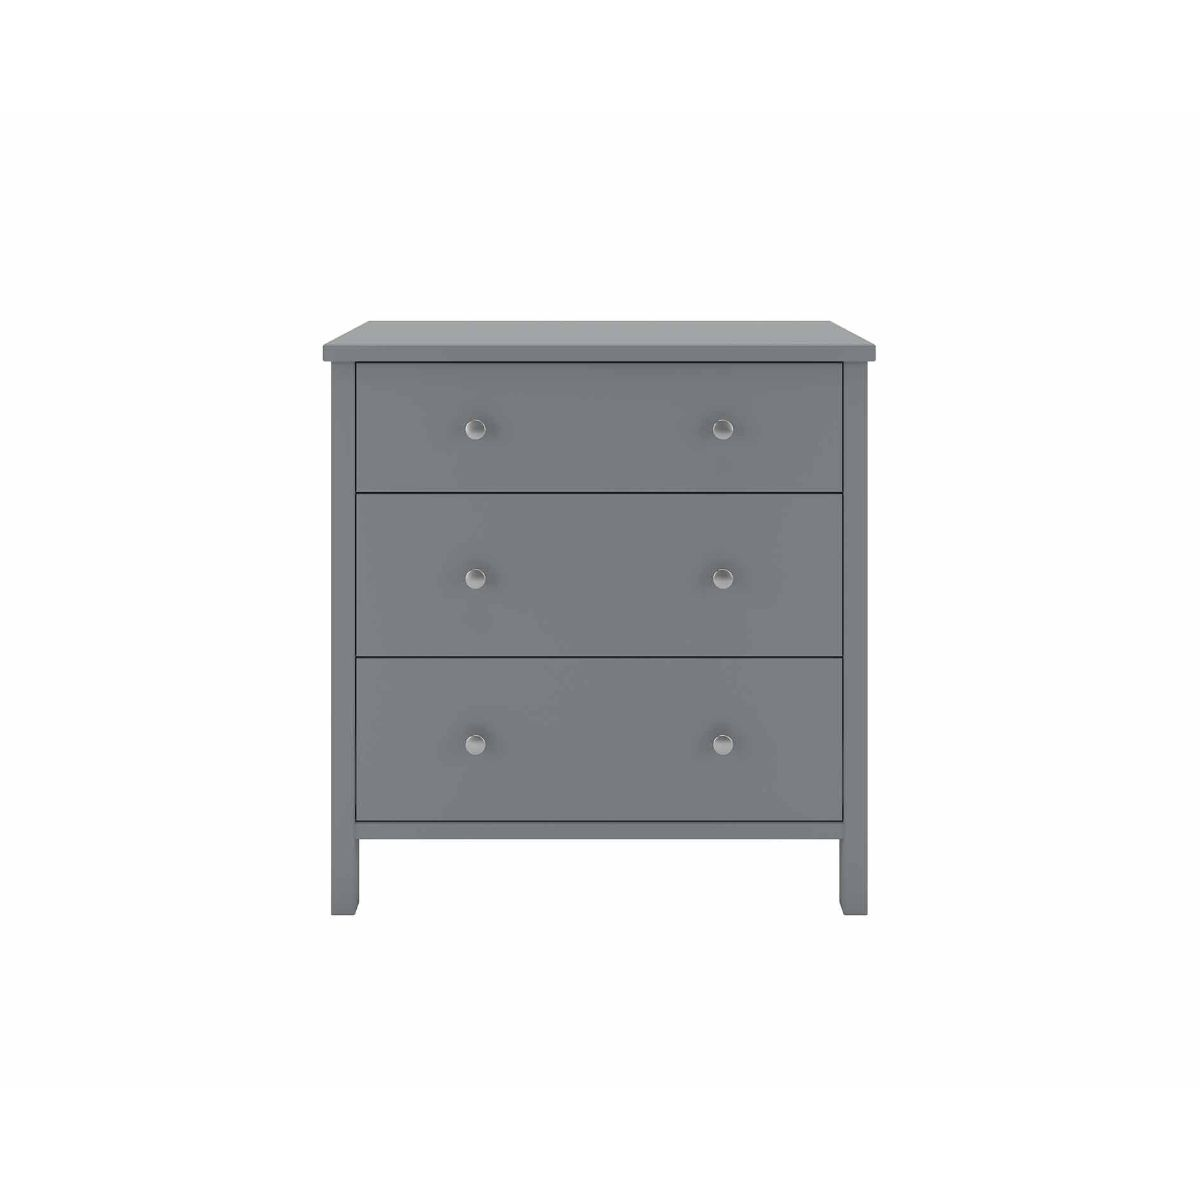 Steens Tromso 3 Drawer Chest of Drawers, Grey